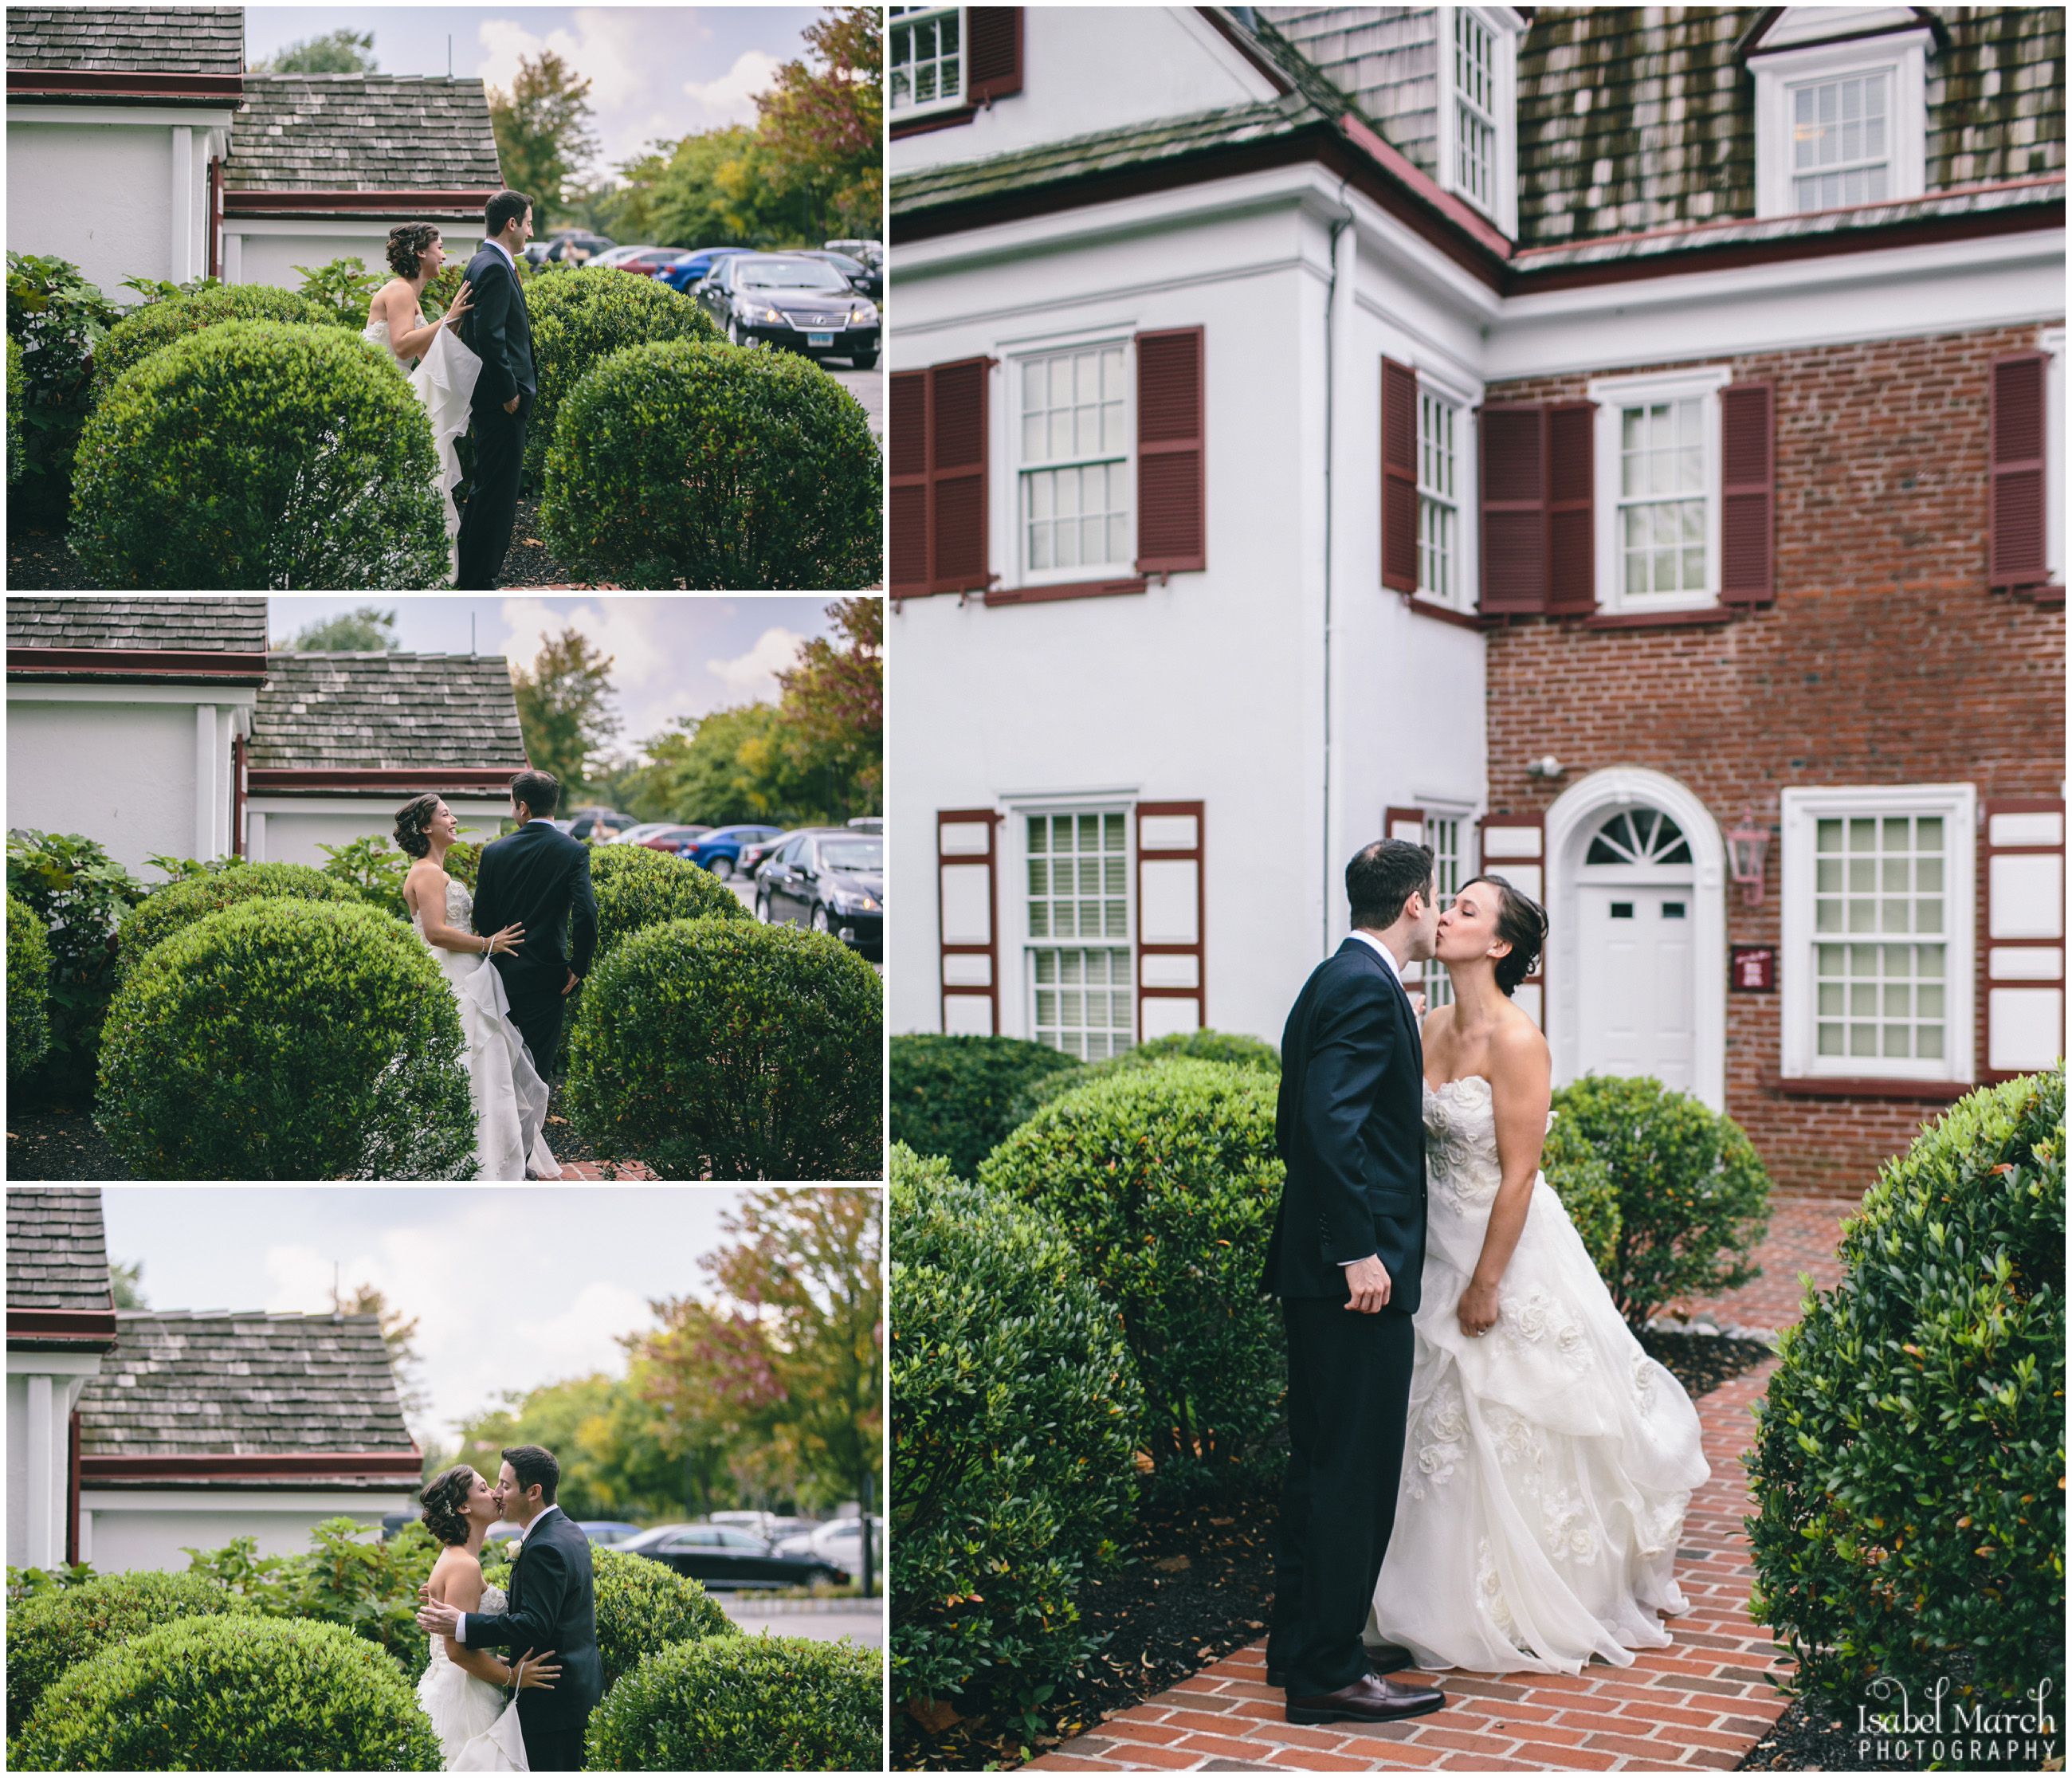 Normandy Farms Wedding: Normandy Farms Wedding: Danielle And Zach » Isabel March